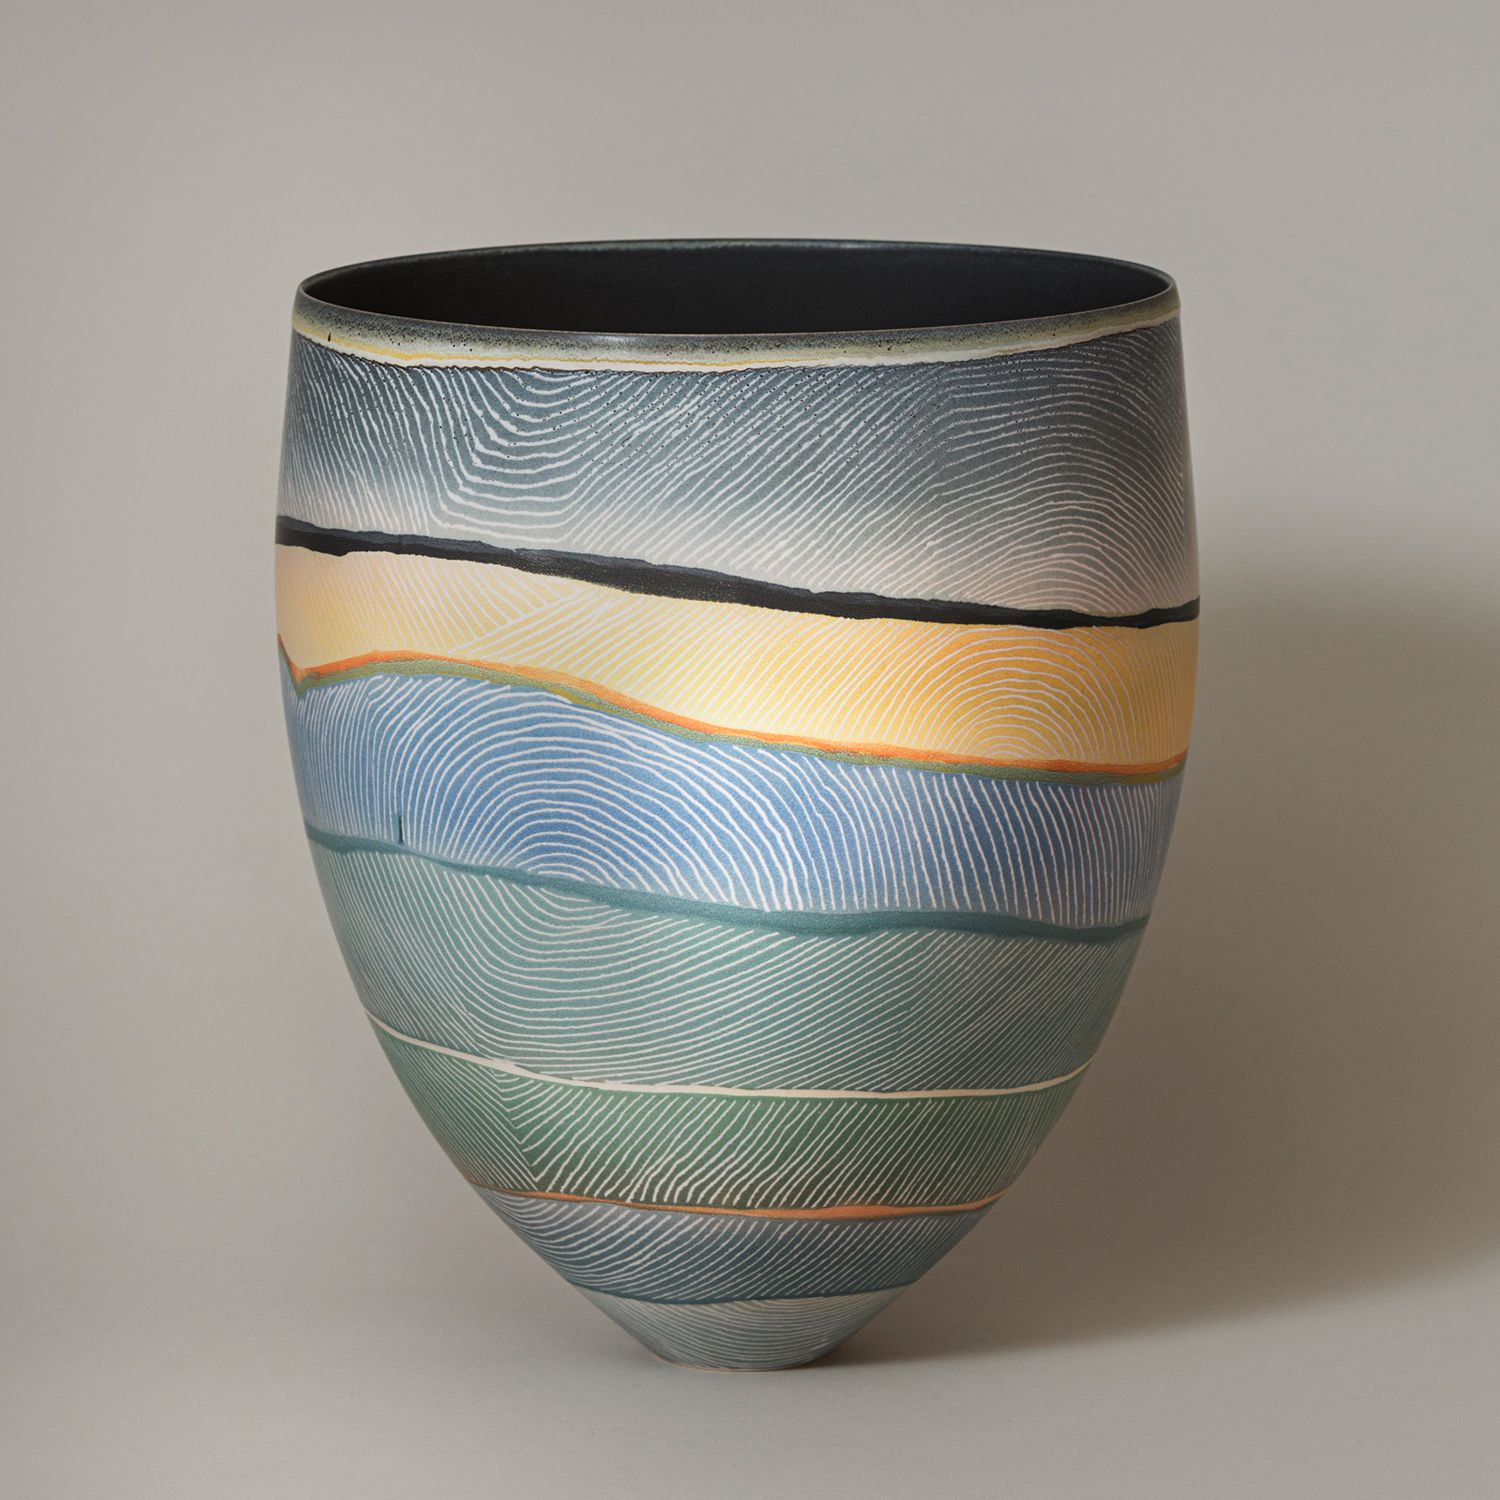 Pippin Drysdale, Chichester Range Flood Plains - Pilbara Series, 2017, porcelain incised with coloured glazes